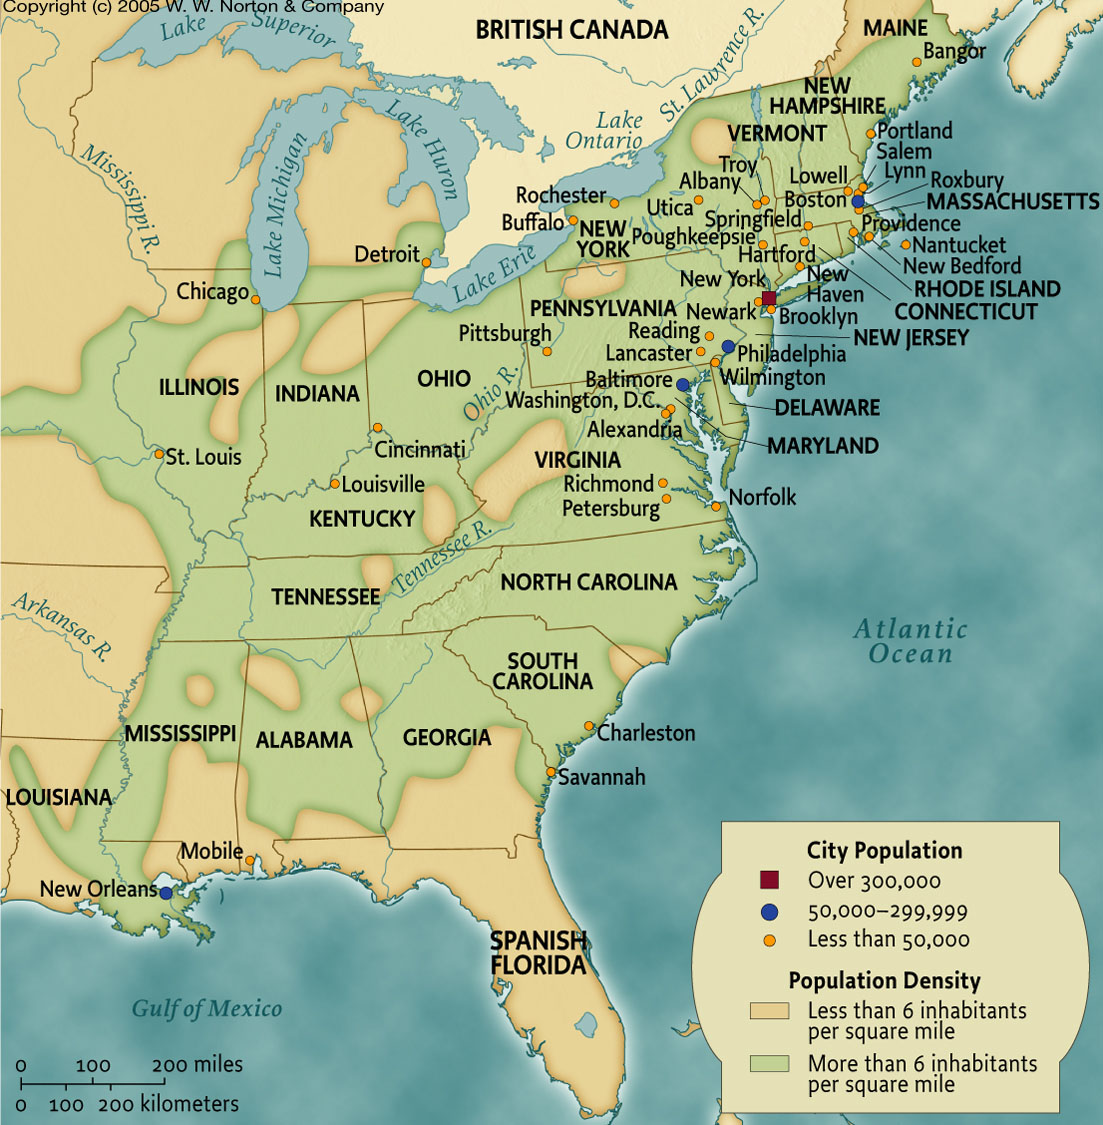 the national feelings and expansionism of the us from 1800 to 1840 Nationalism the time period 1800 to 1840 was a time of great nationalism and expansionism in the united states the national feelings were caused by political.